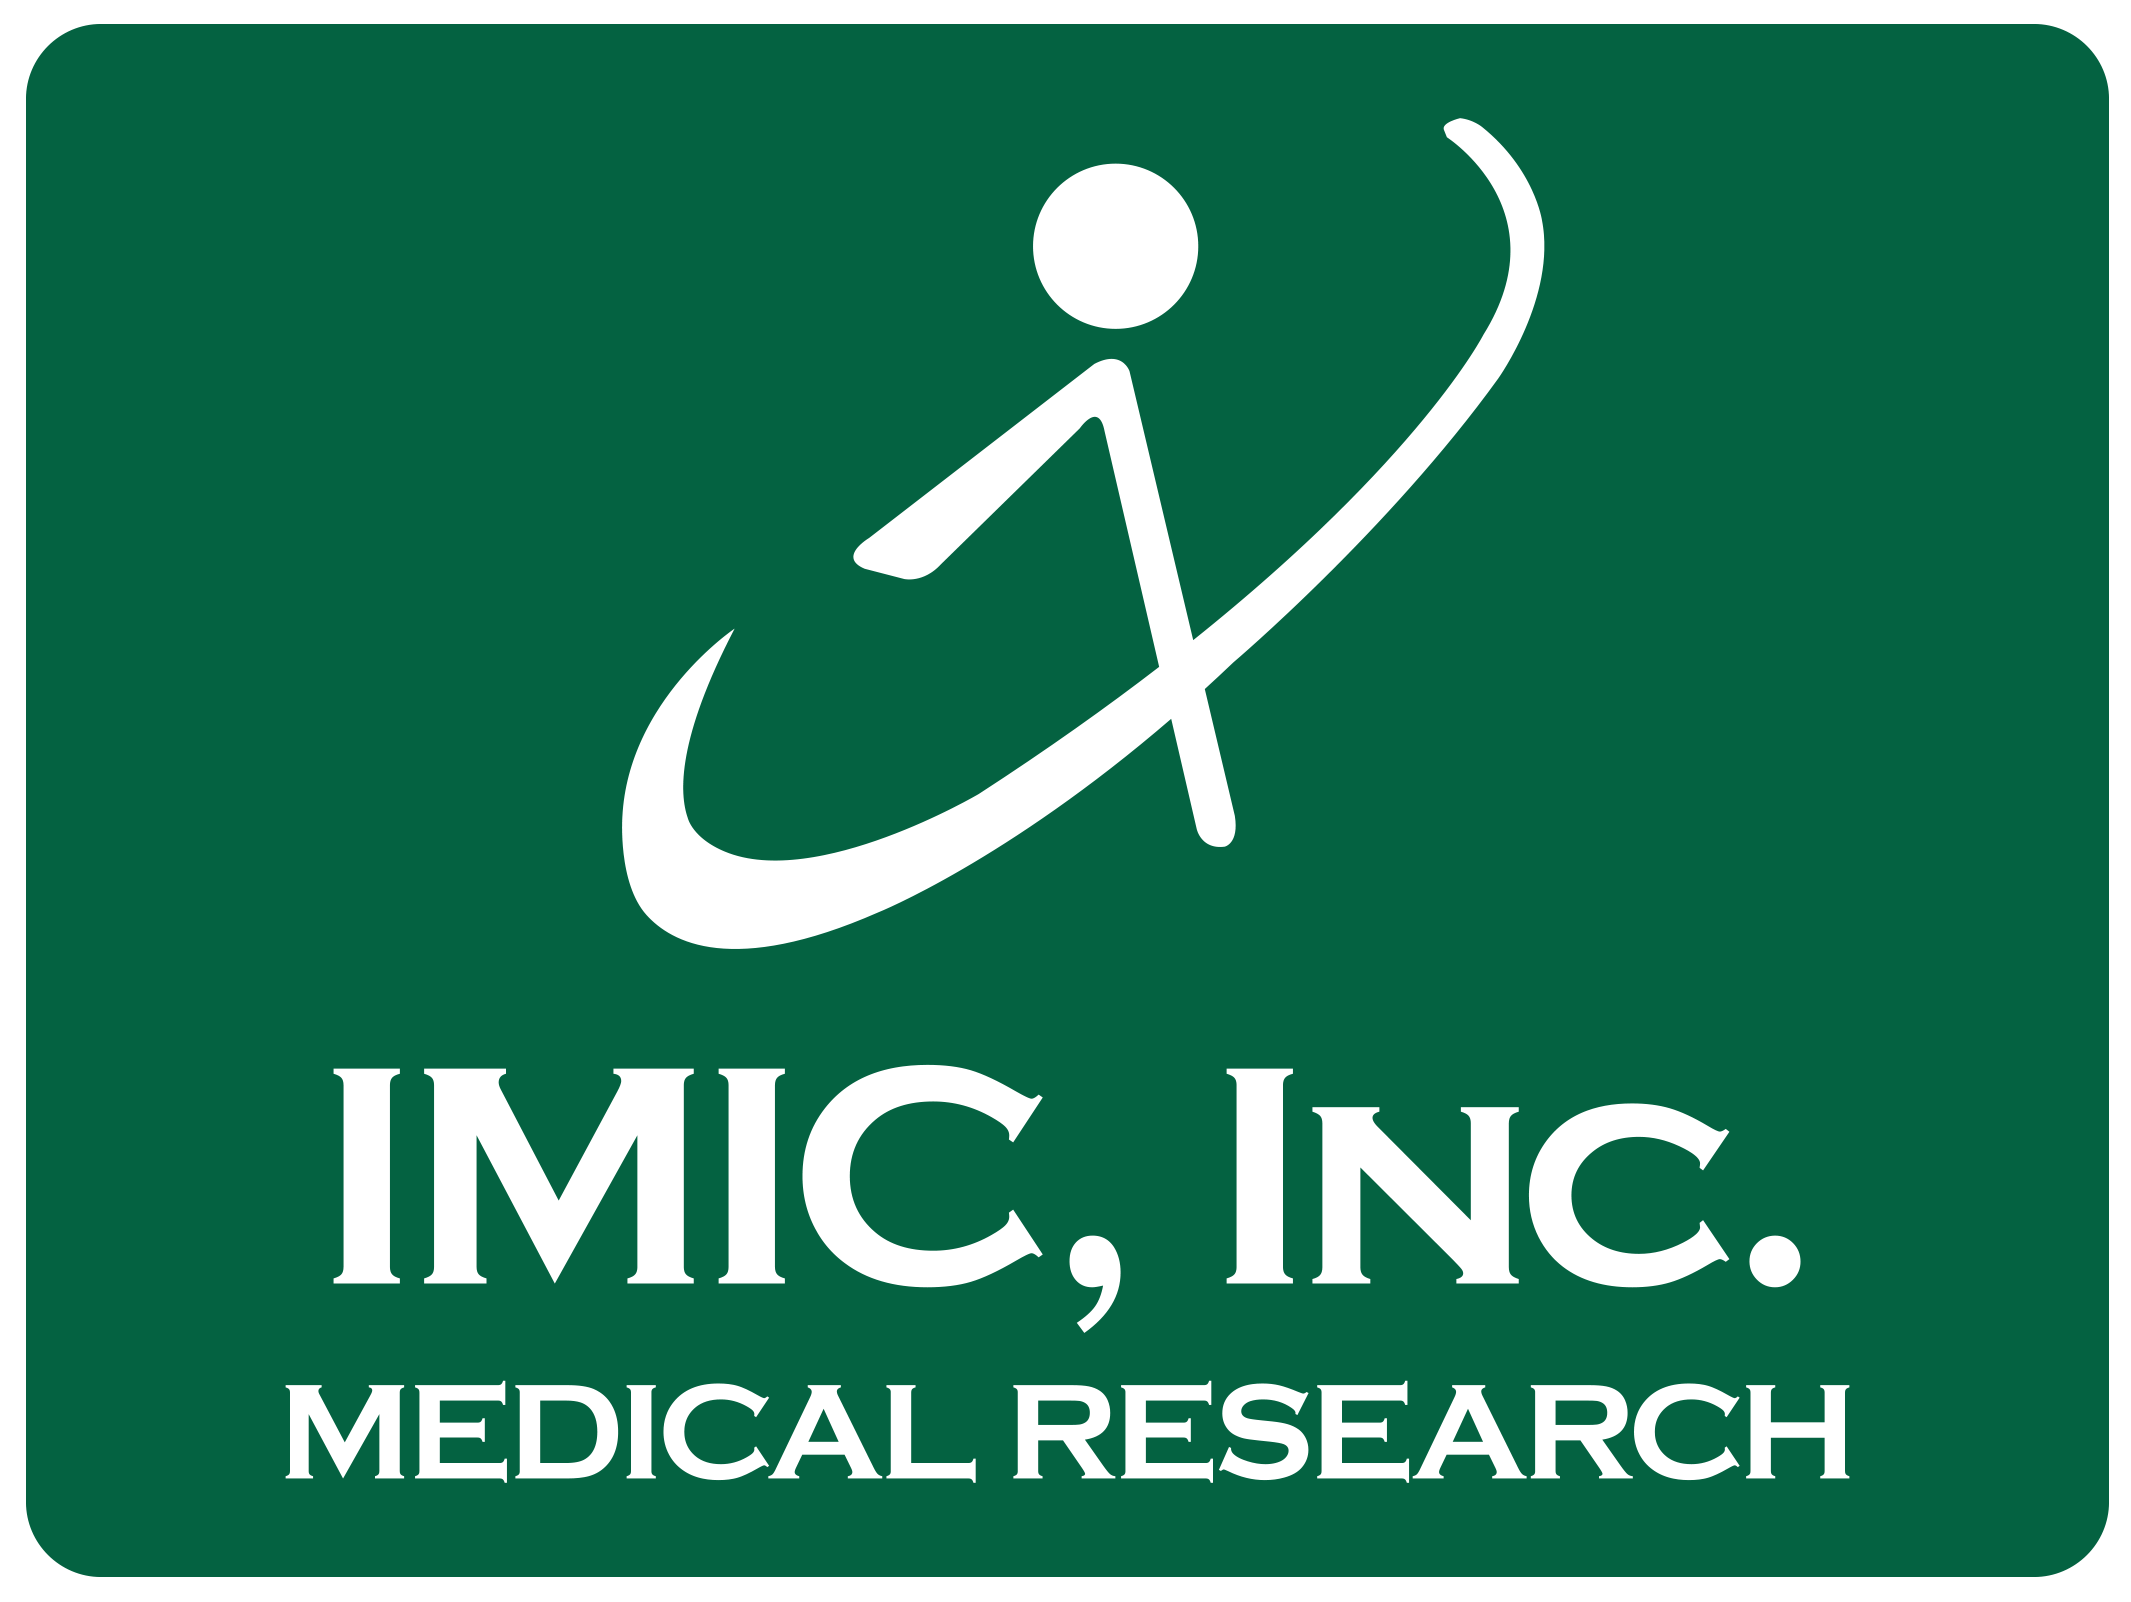 IMIC Medical Research Center Adds New Agents to ACTIV-2 Clinical Trial in Miami Dade to Investigate Early COVID-19 Treatments